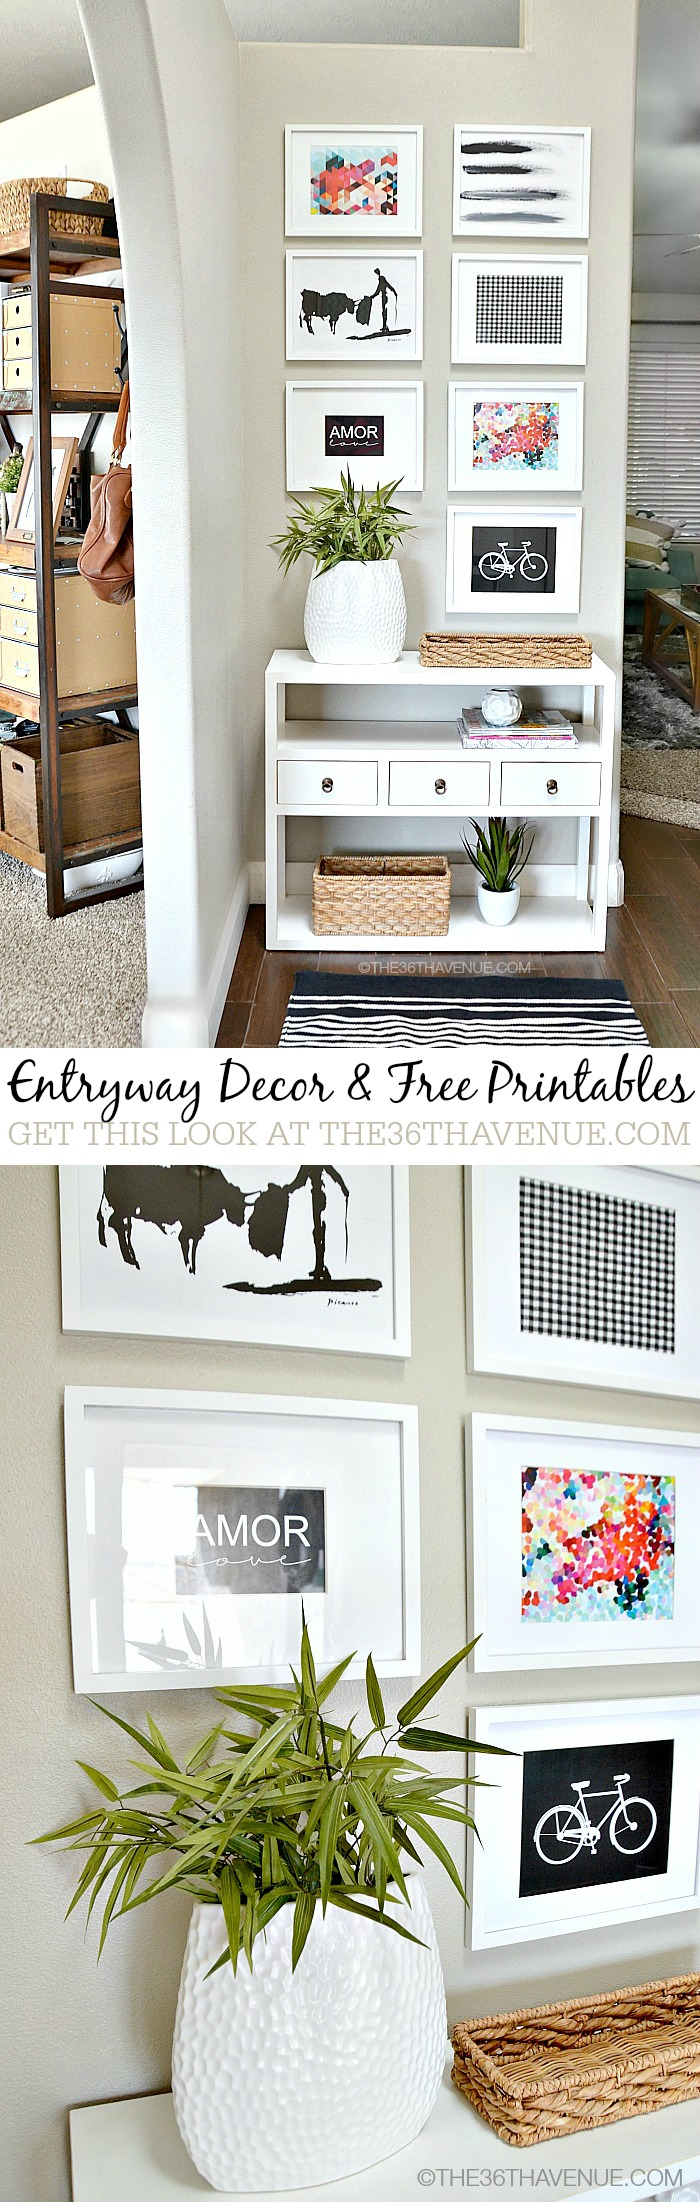 The 36th Avenue Home Decor Entryway And Free Home Decorators Catalog Best Ideas of Home Decor and Design [homedecoratorscatalog.us]